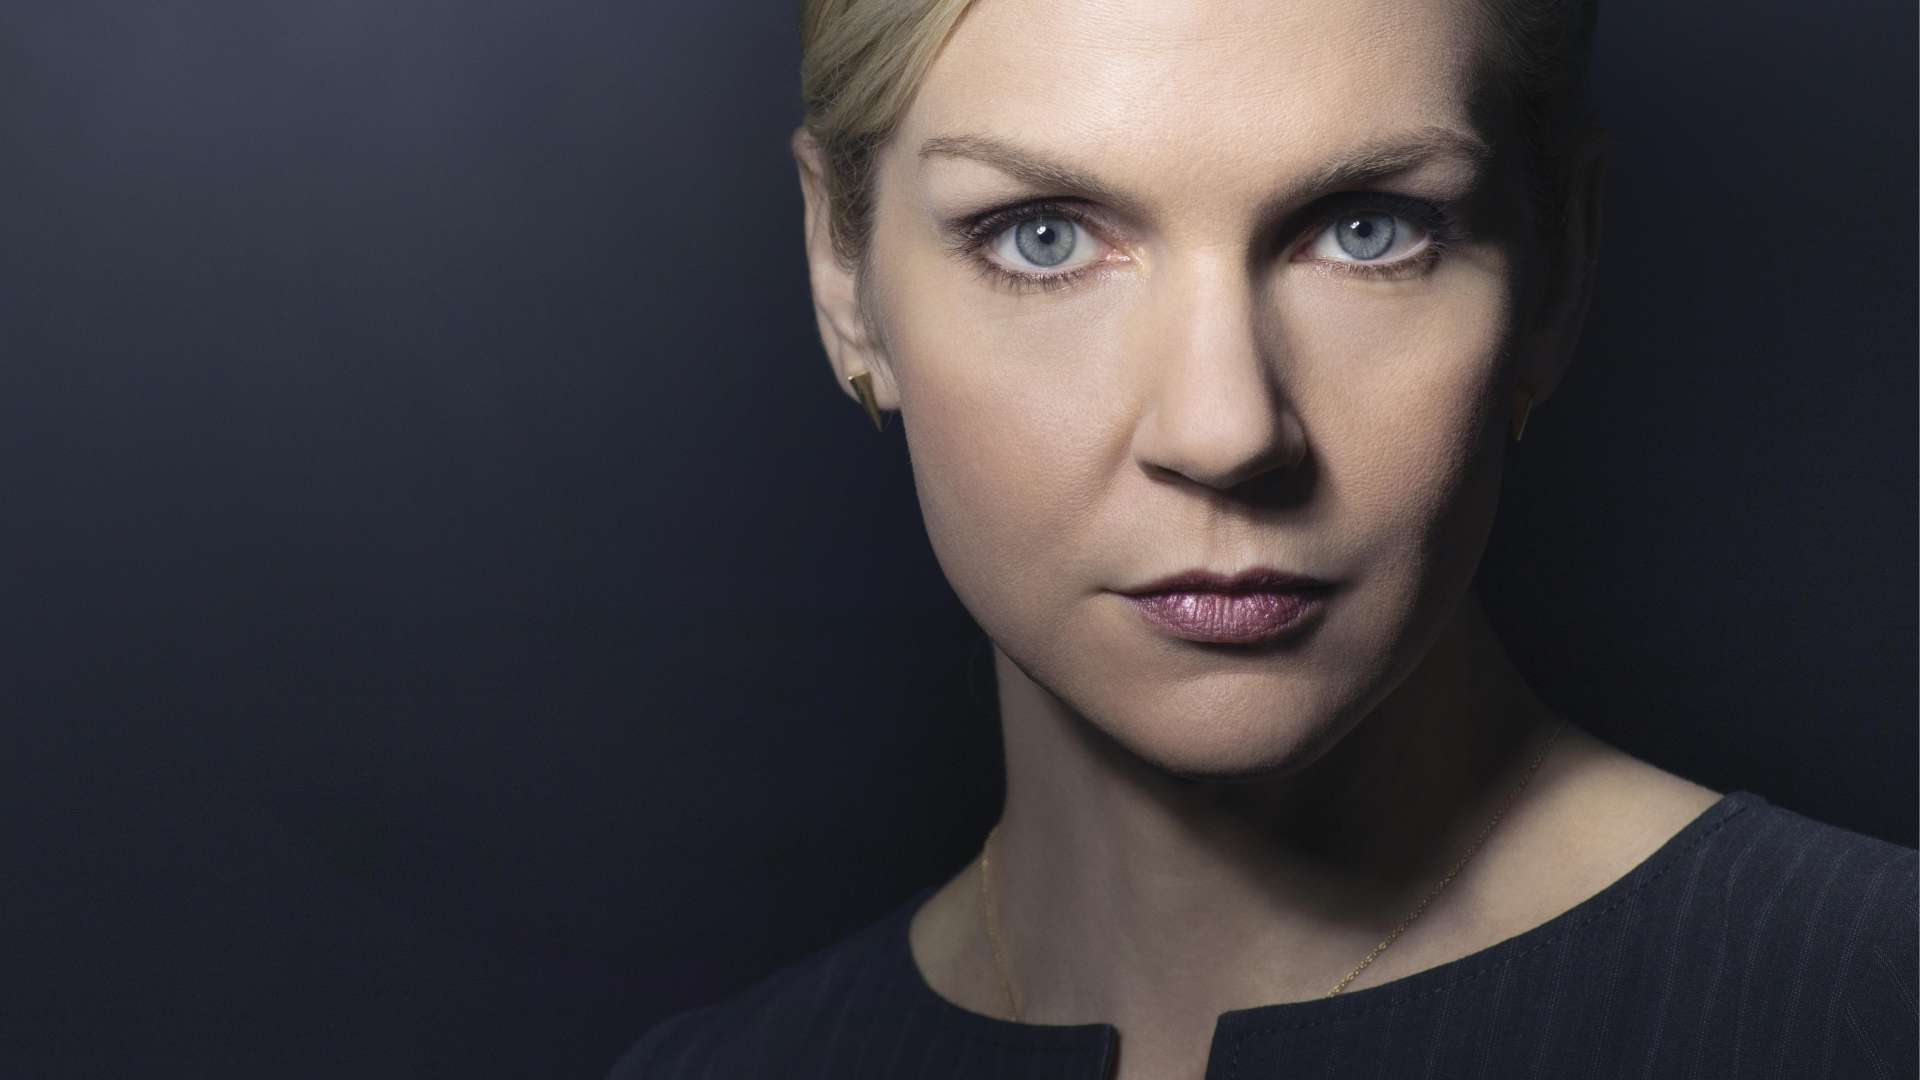 Rhea Seehorn HD Wallpaper